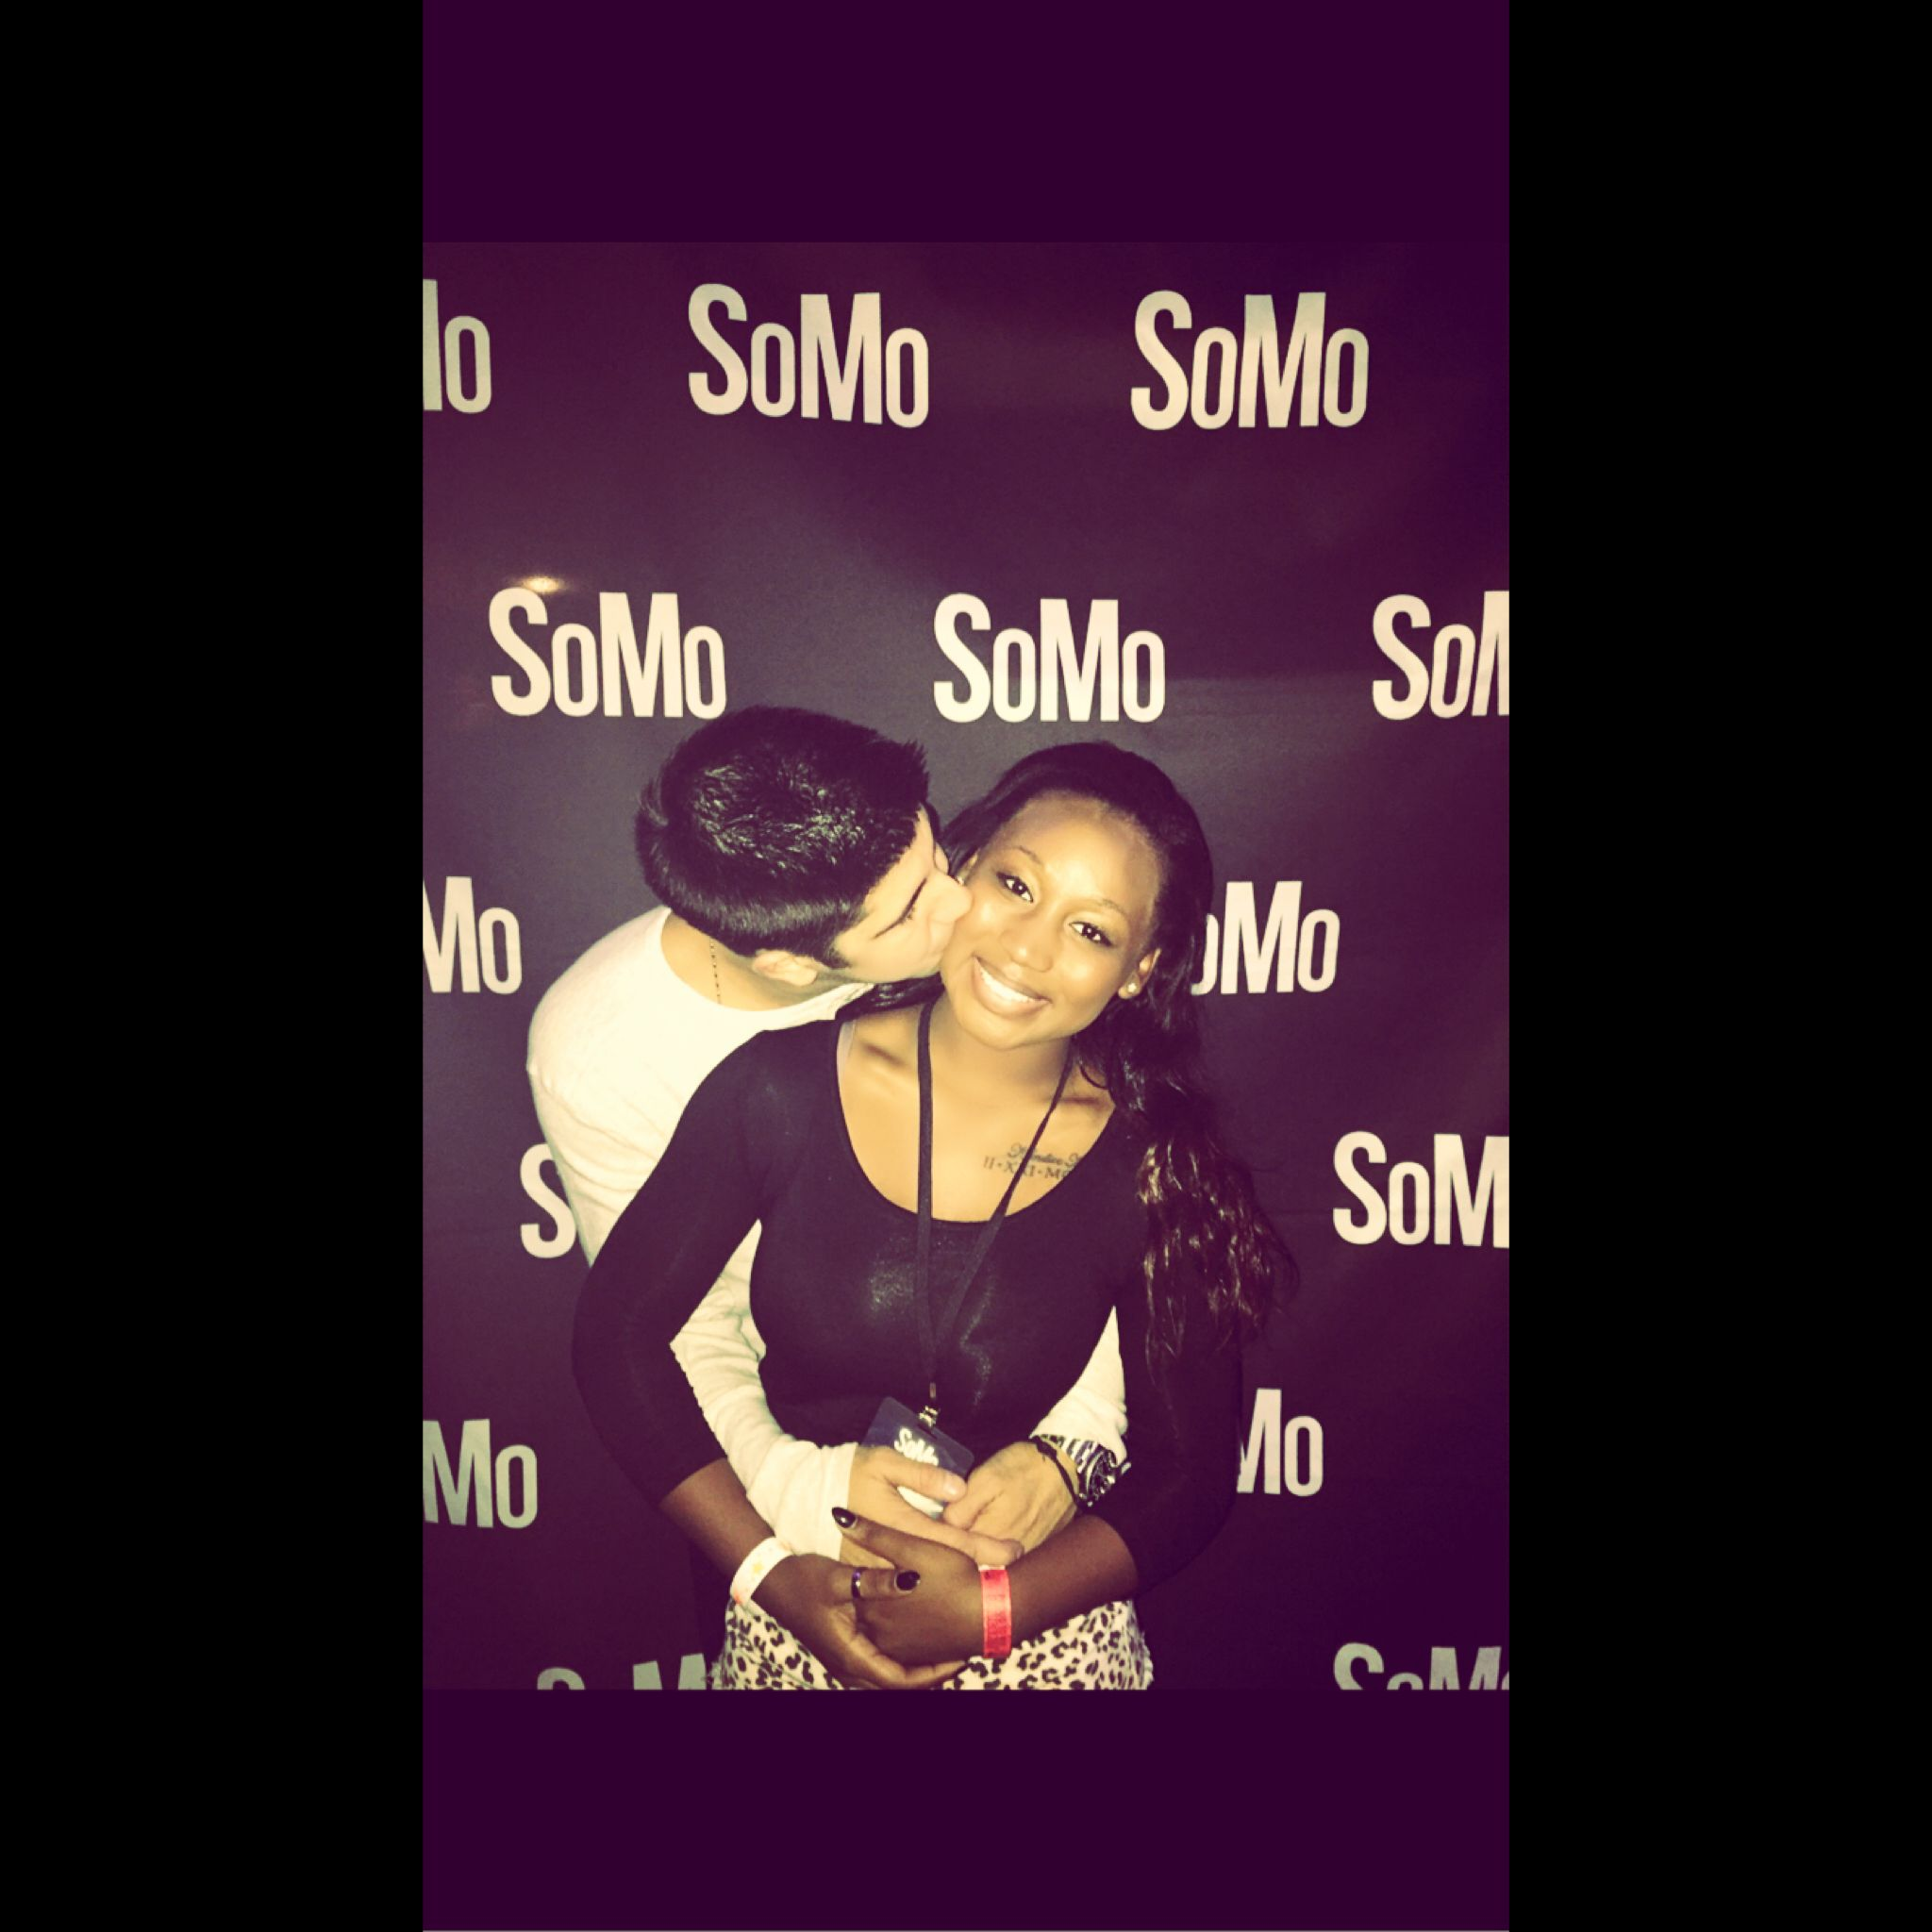 Meet And Greet Pose With Somo Somo Pinterest Meet And Greet